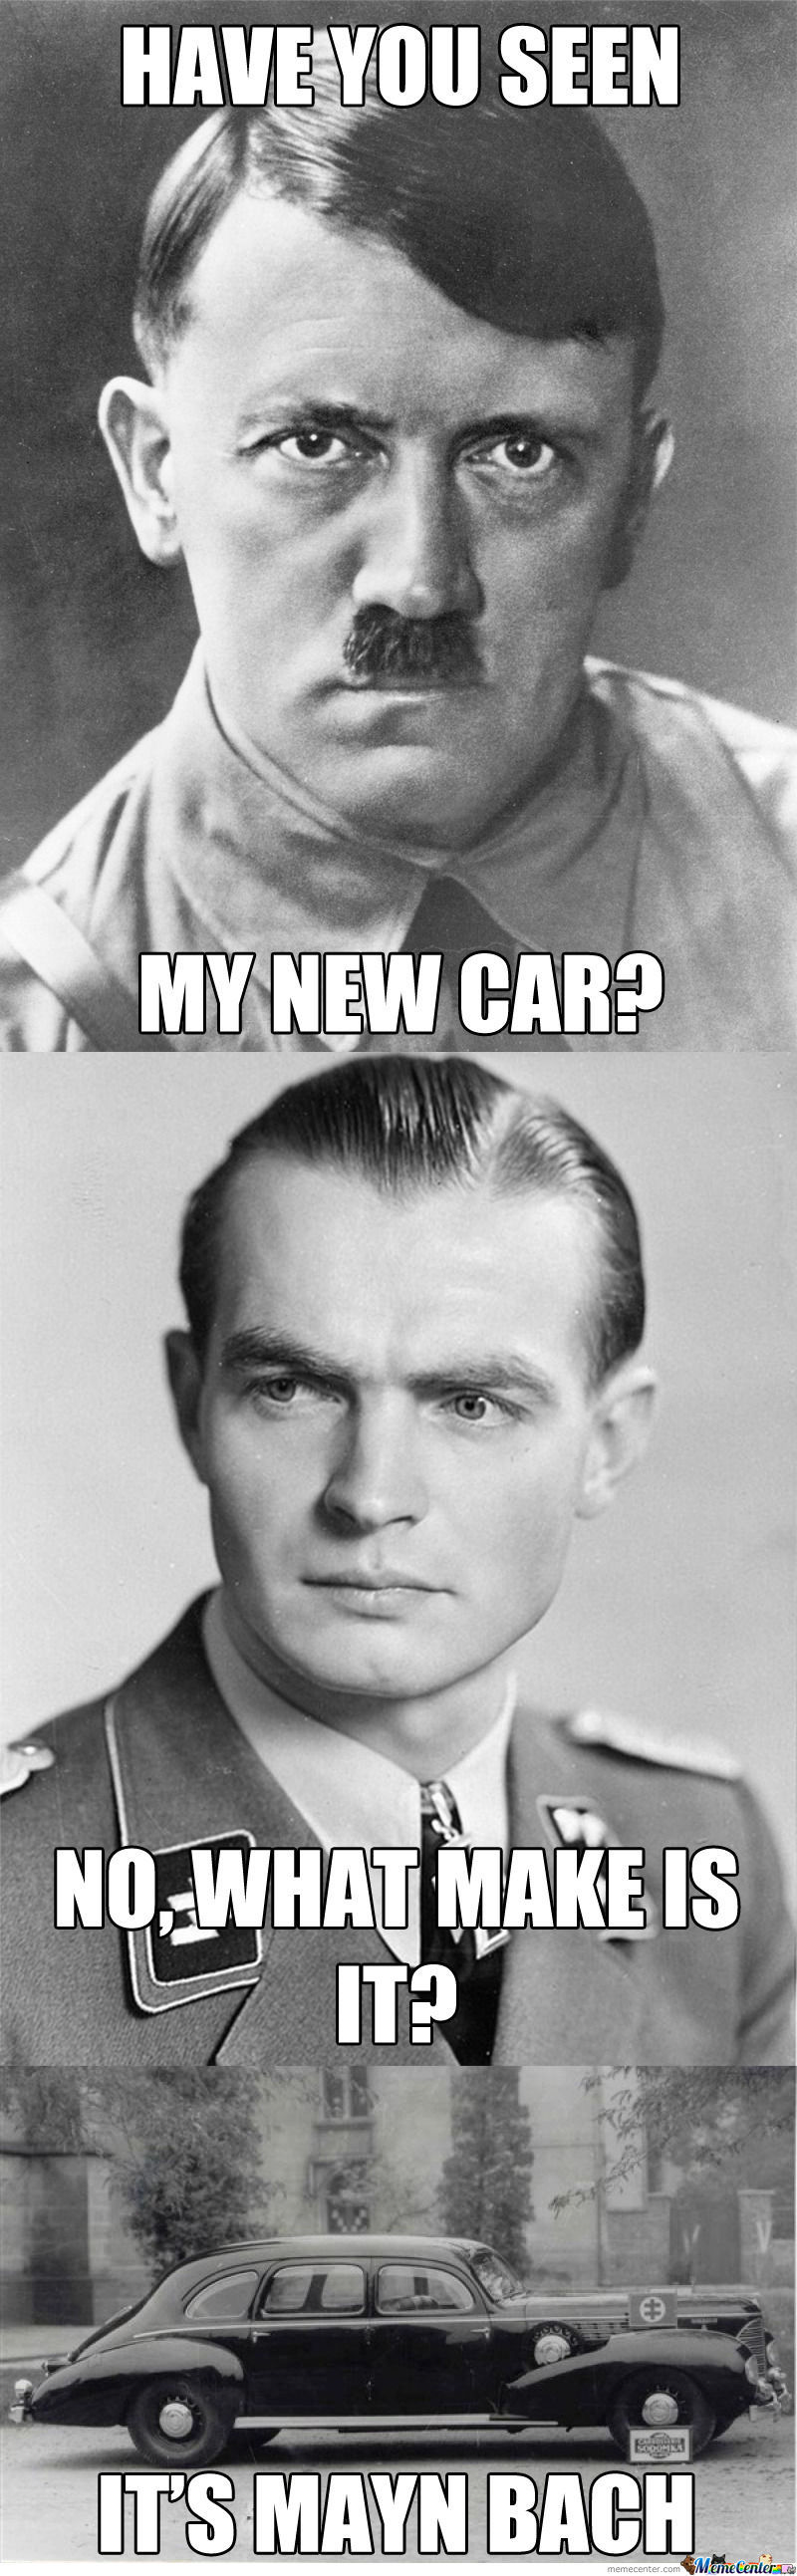 Fuhrer's New Car